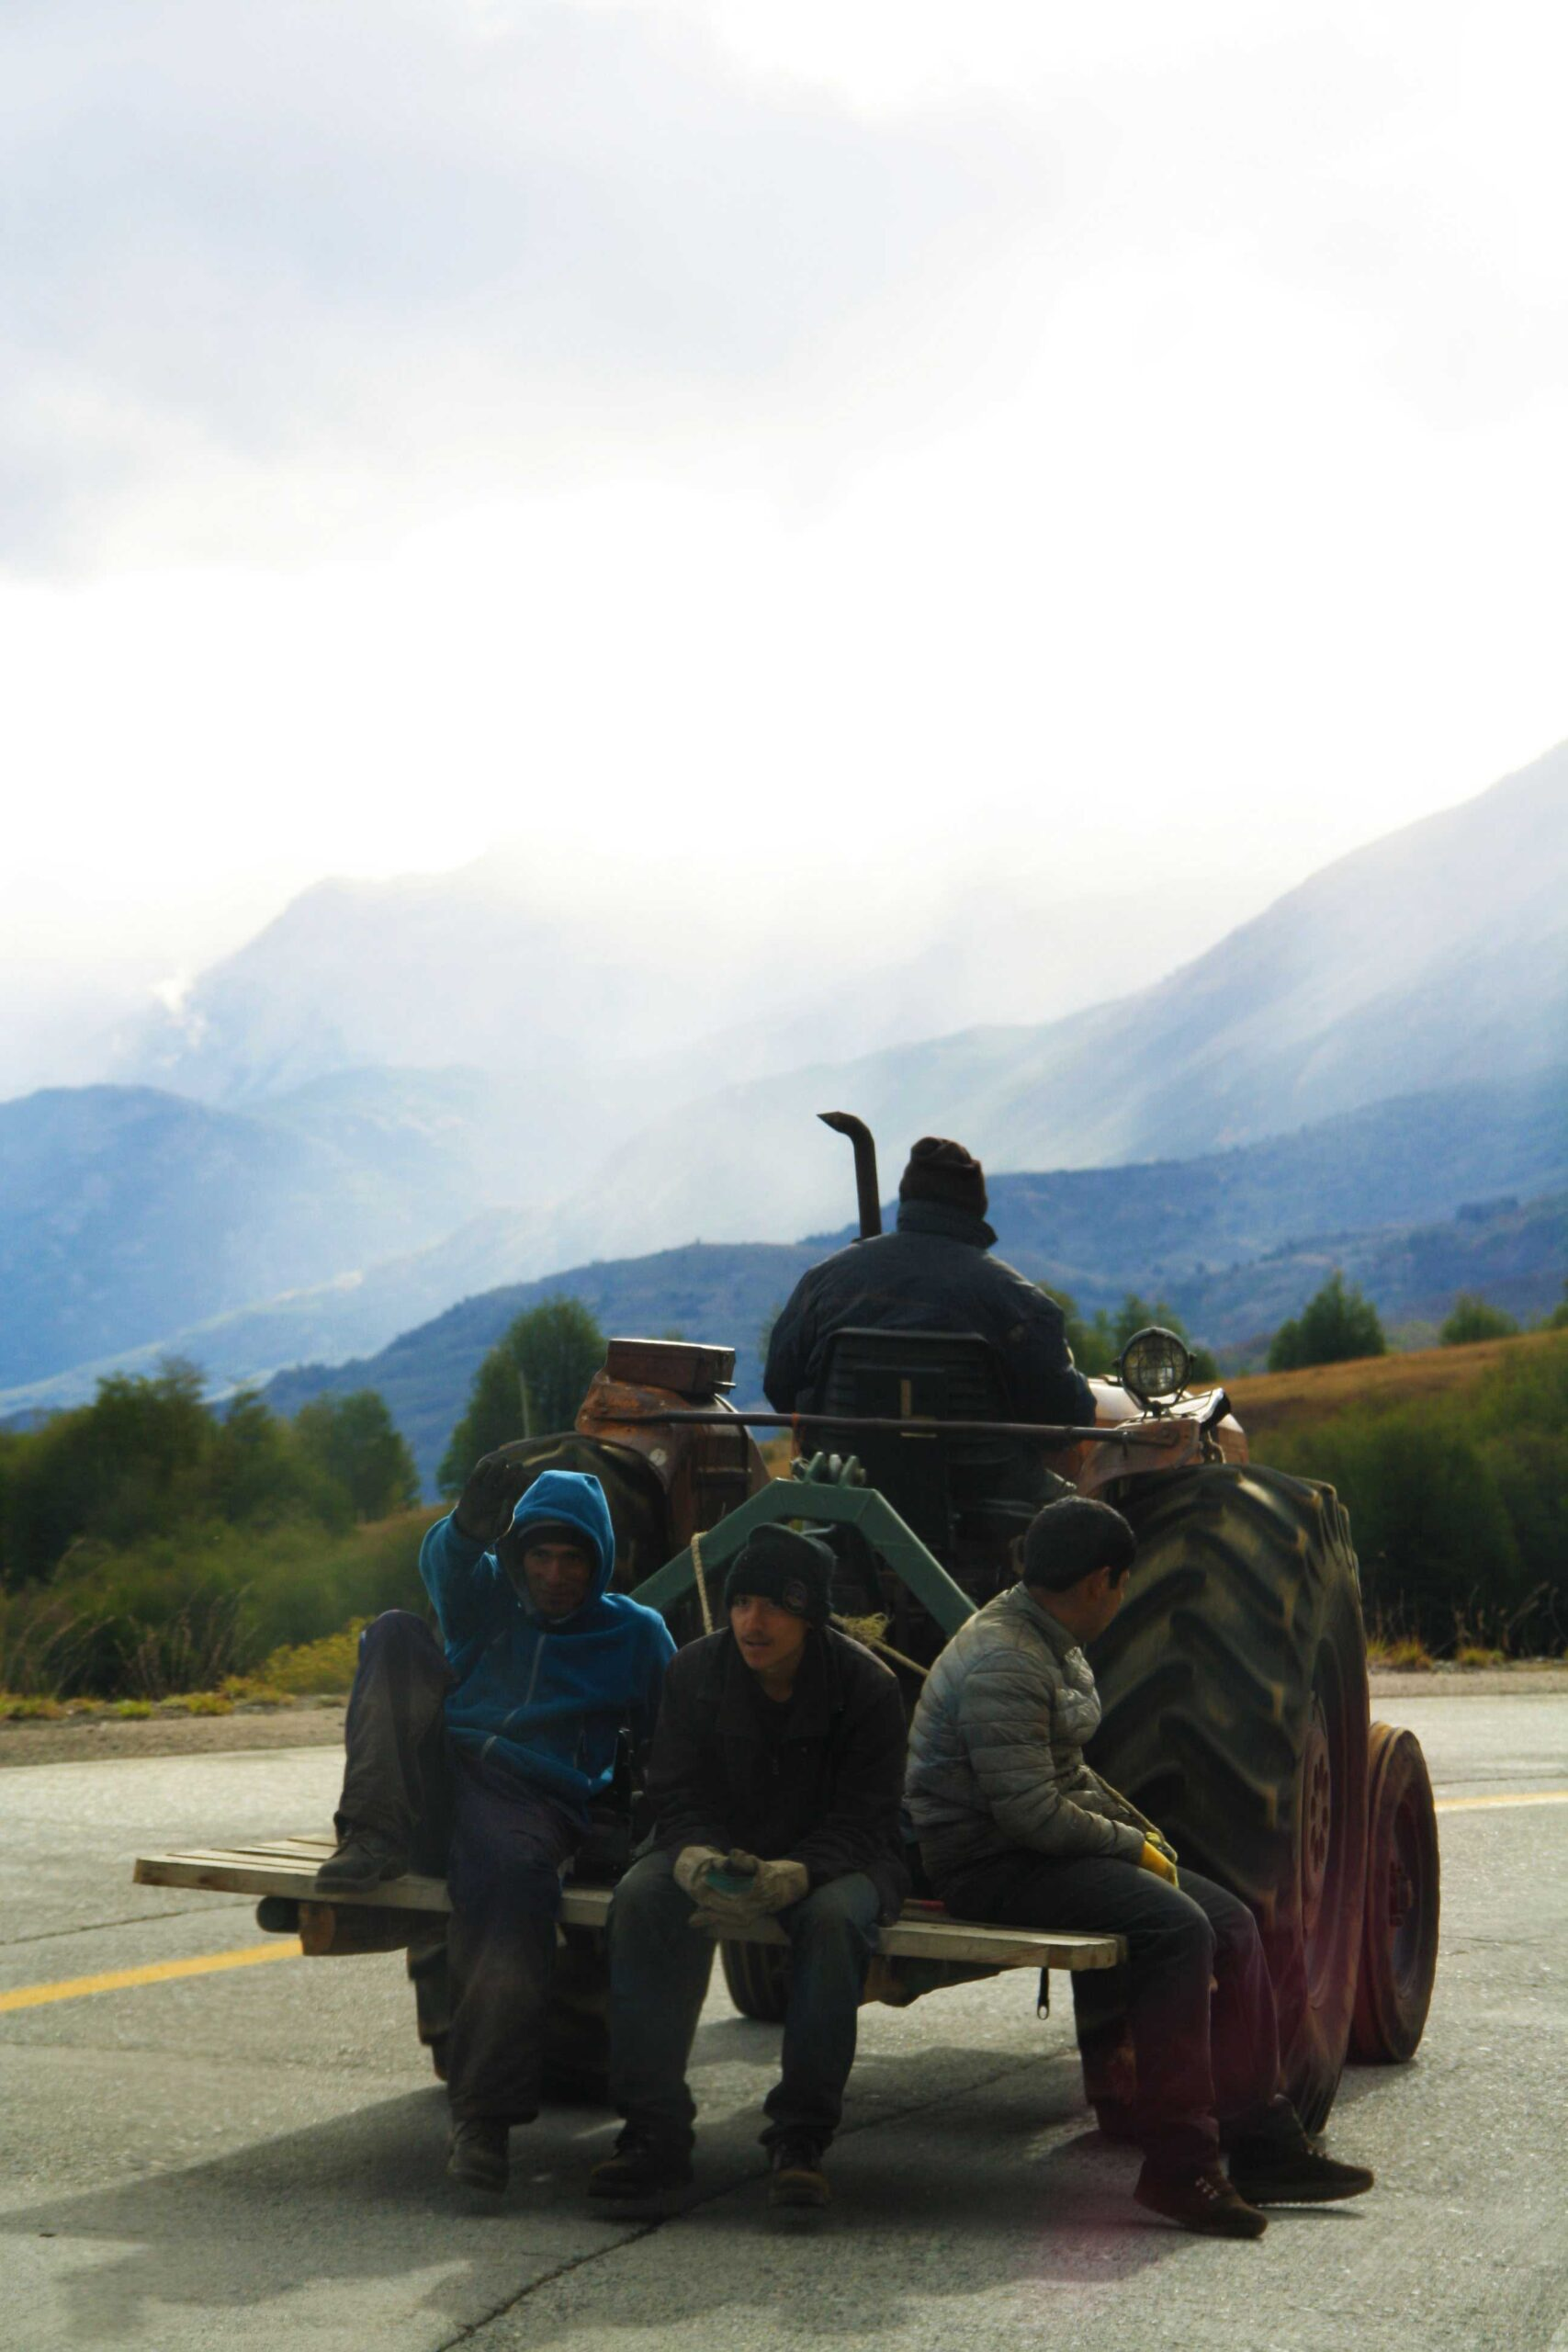 Tractor on the Carretera Austral in Chile